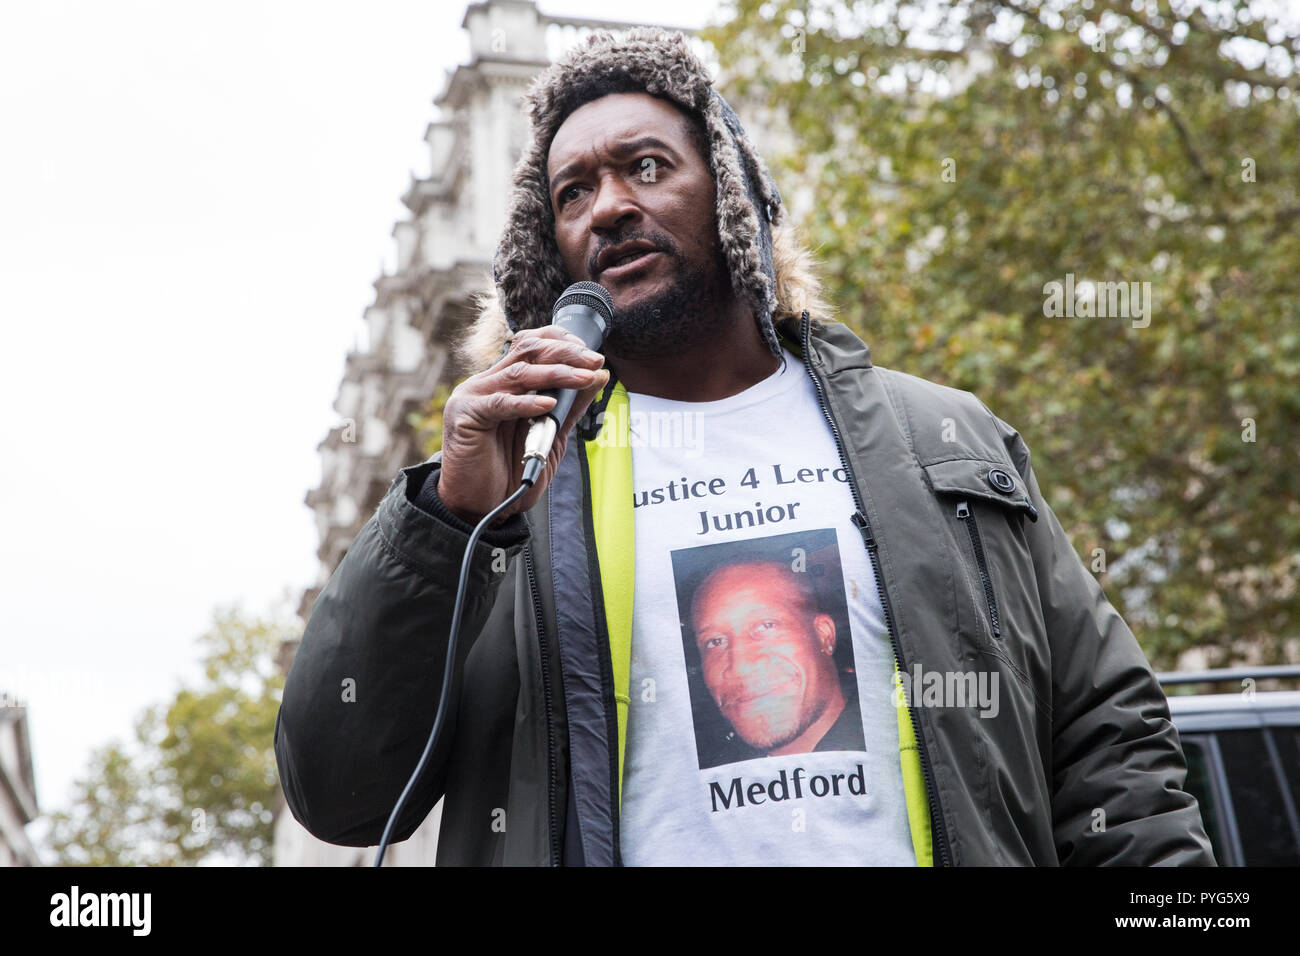 London, UK. 27th October, 2018. Dennis Medford, brother of Leroy 'Junior' Medford, addresses campaigners from the United Families and Friends Campaign (UFFC) taking part in the 20th annual procession to Downing Street in remembrance of family members and friends who died in police custody, prison, immigration detention or secure psychiatric hospitals. Junior Medford, 43, died from a heroin overdose at Loddon Valley police station on 2nd April 2017. Credit: Mark Kerrison/Alamy Live News - Stock Image